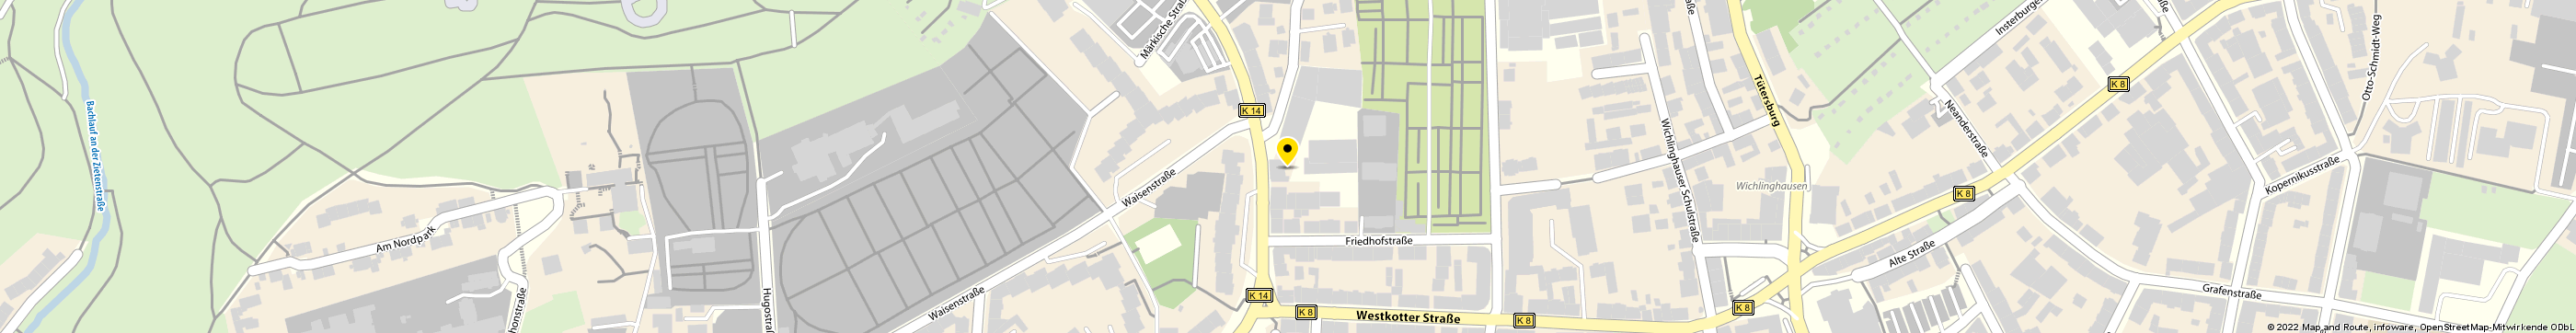 A&A AutoService GmbH & Co. KG in Wuppertal-Barmen Karte